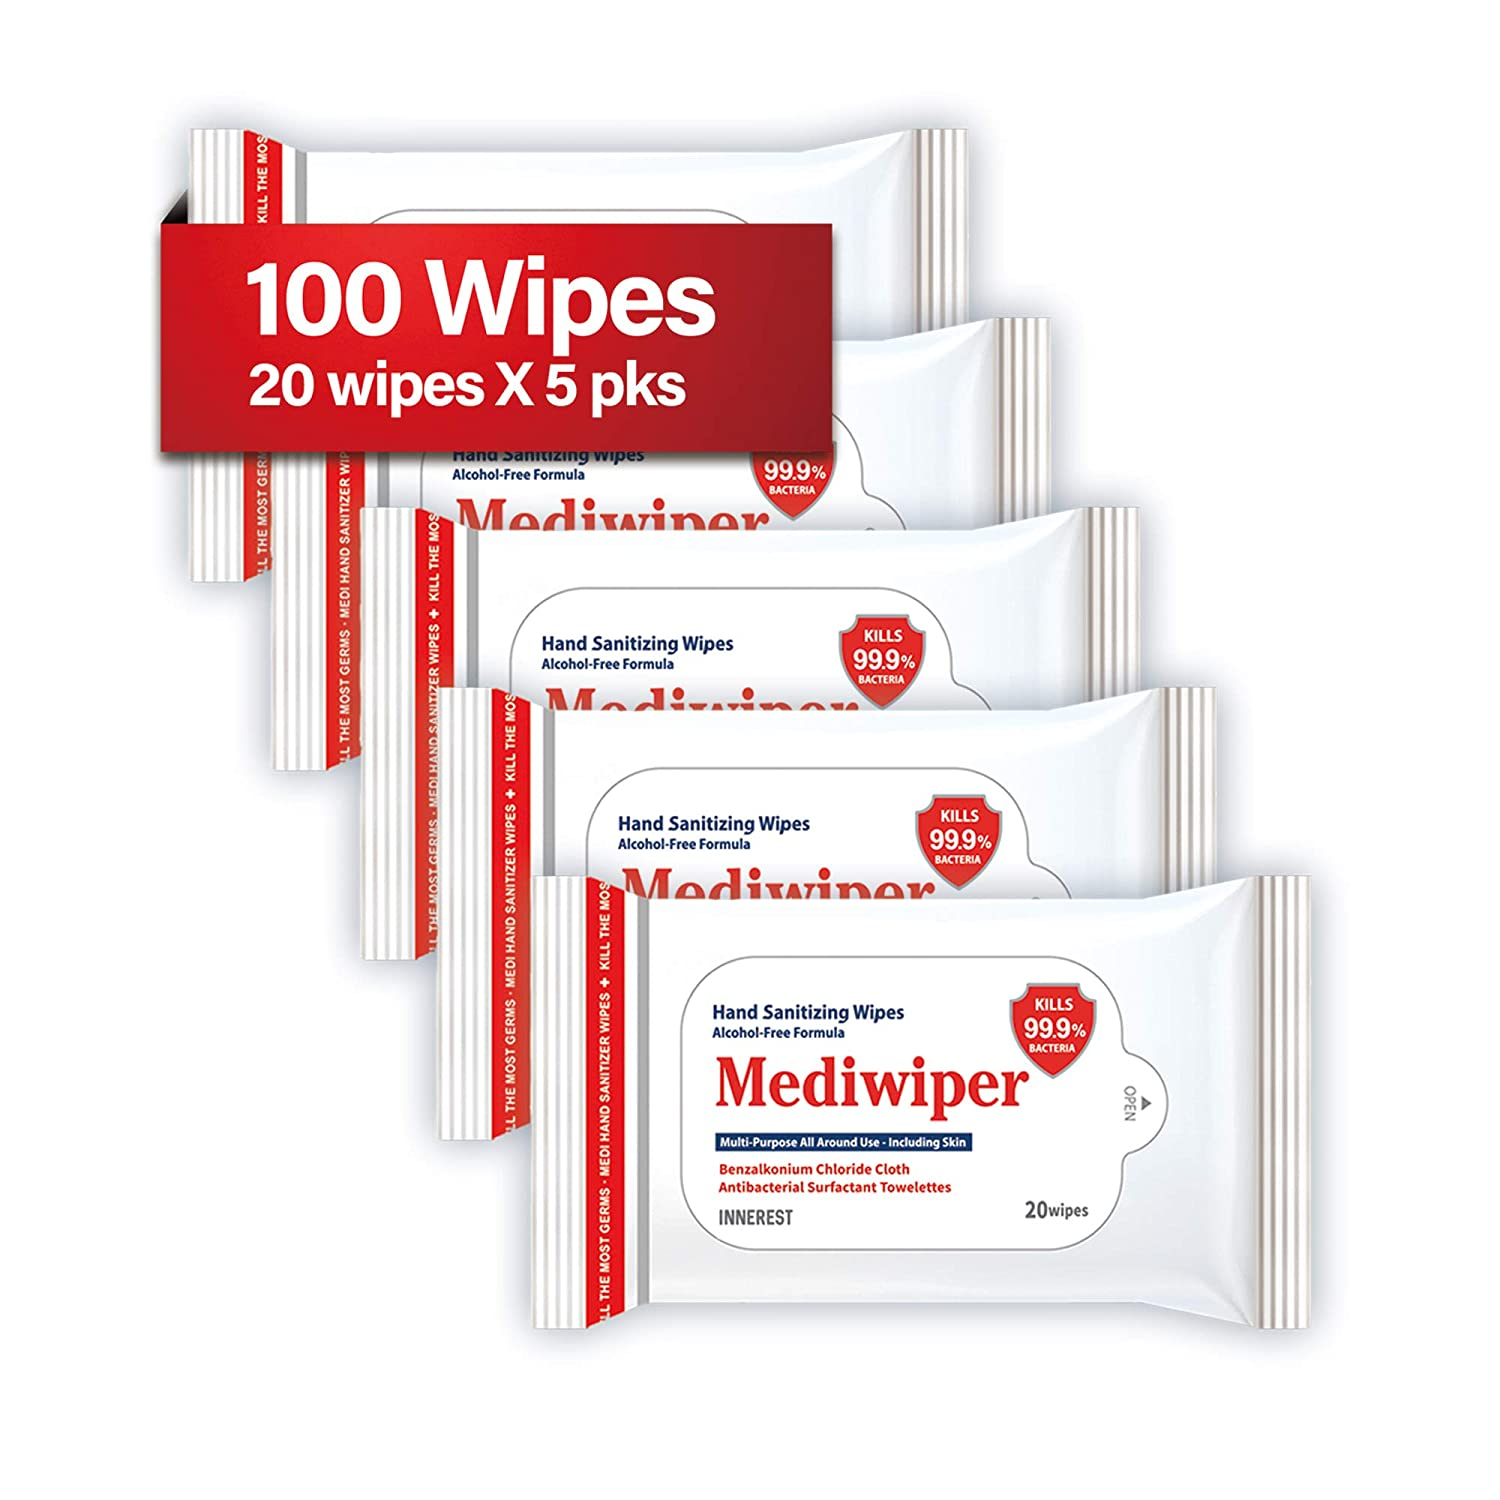 Refreshing Wet Wipes Alcohol-Free Wipes Travel Size to Sanitize/Clean/Deodorize Bulk Wipes (100 Wipes (205pks, Prime))